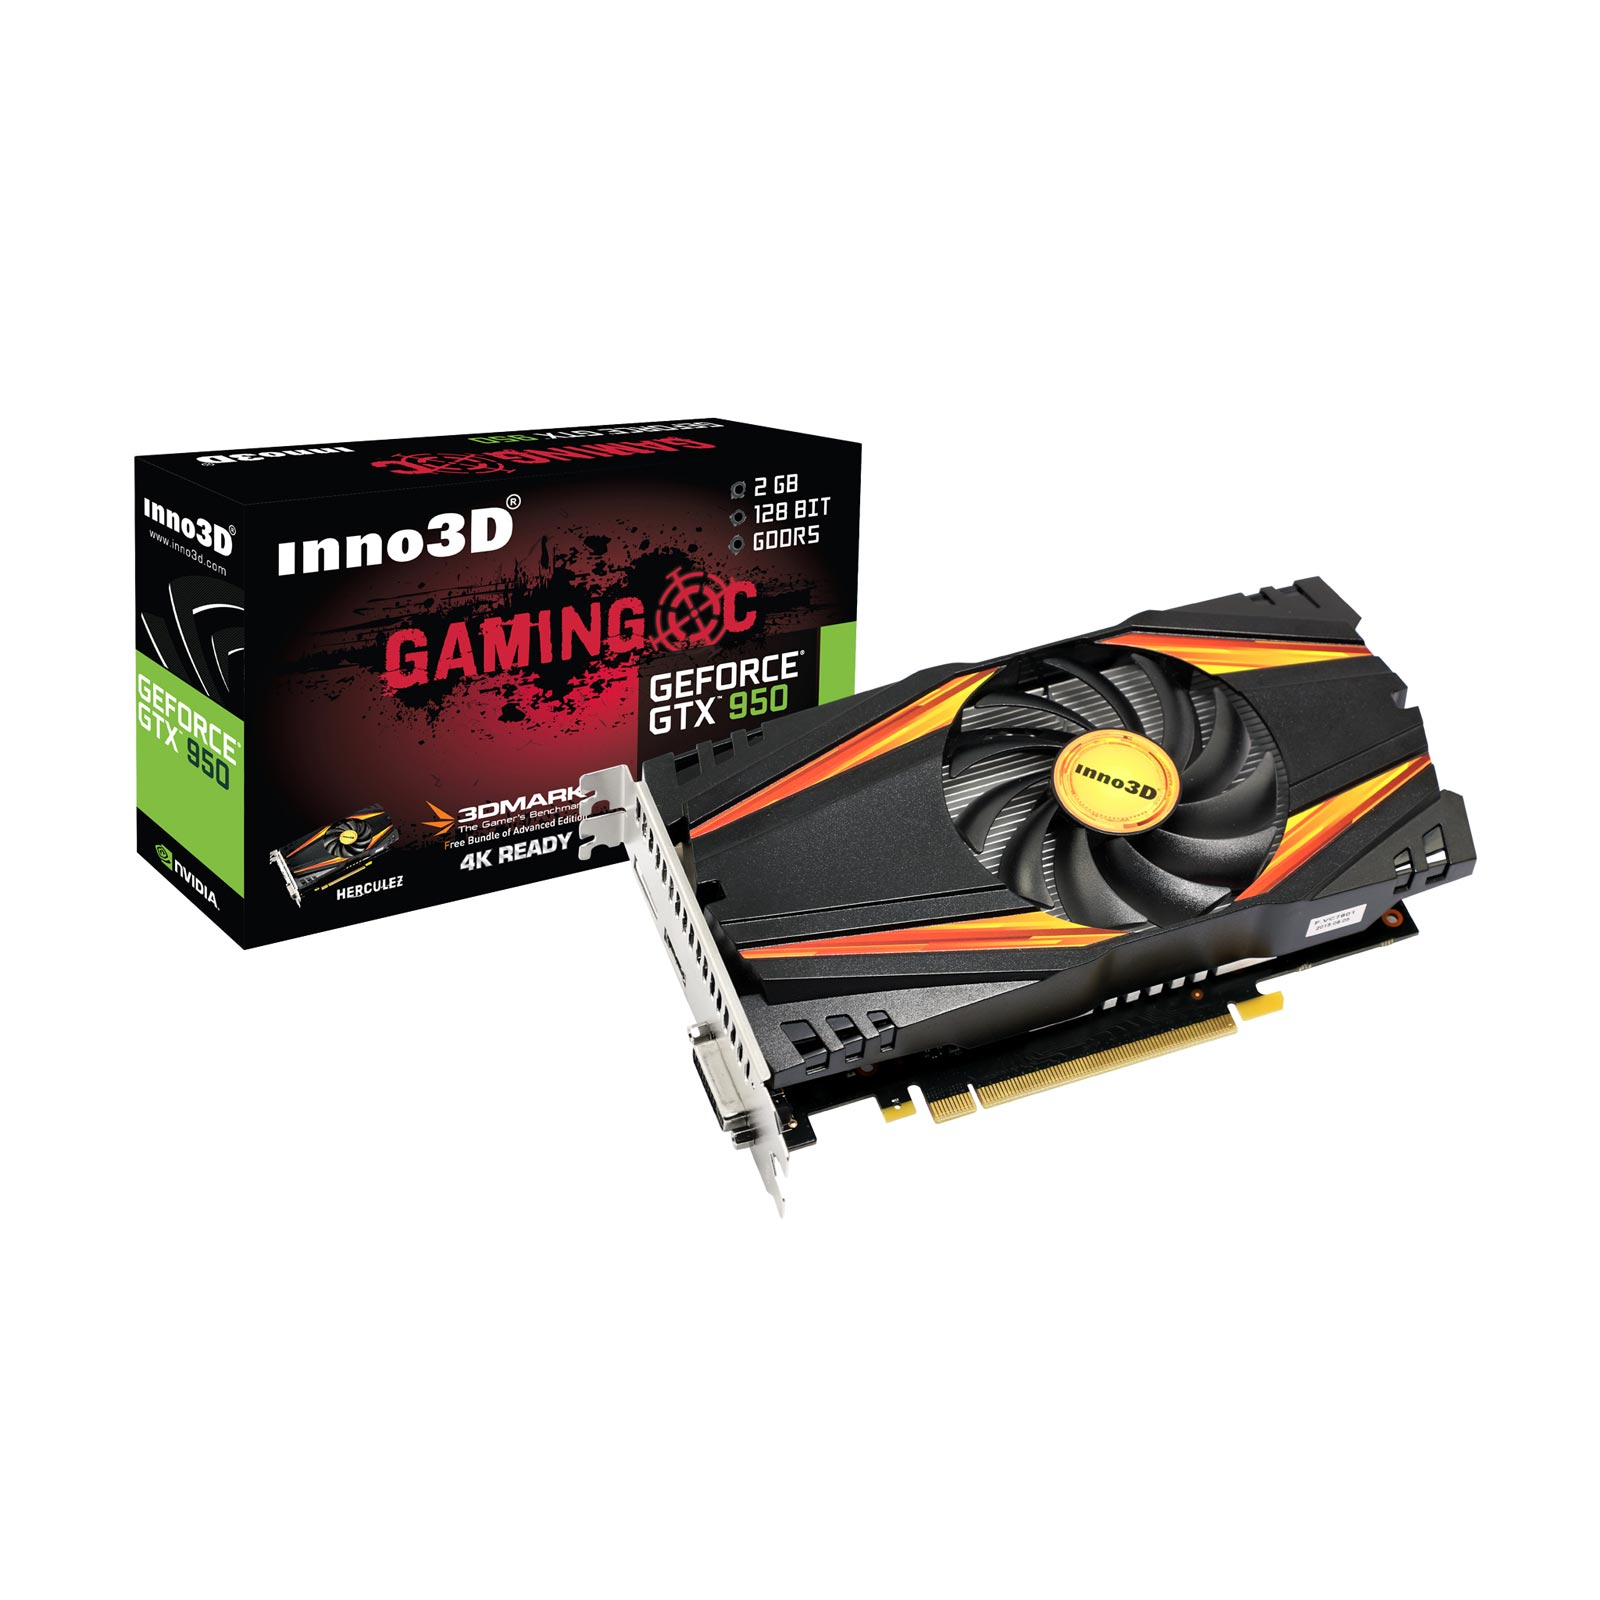 Carte graphique Inno3D GeForce GTX 950 OC 2Go DDR5 PCIe 3.0, informatique reunion, informatique ile de la Réunion 974